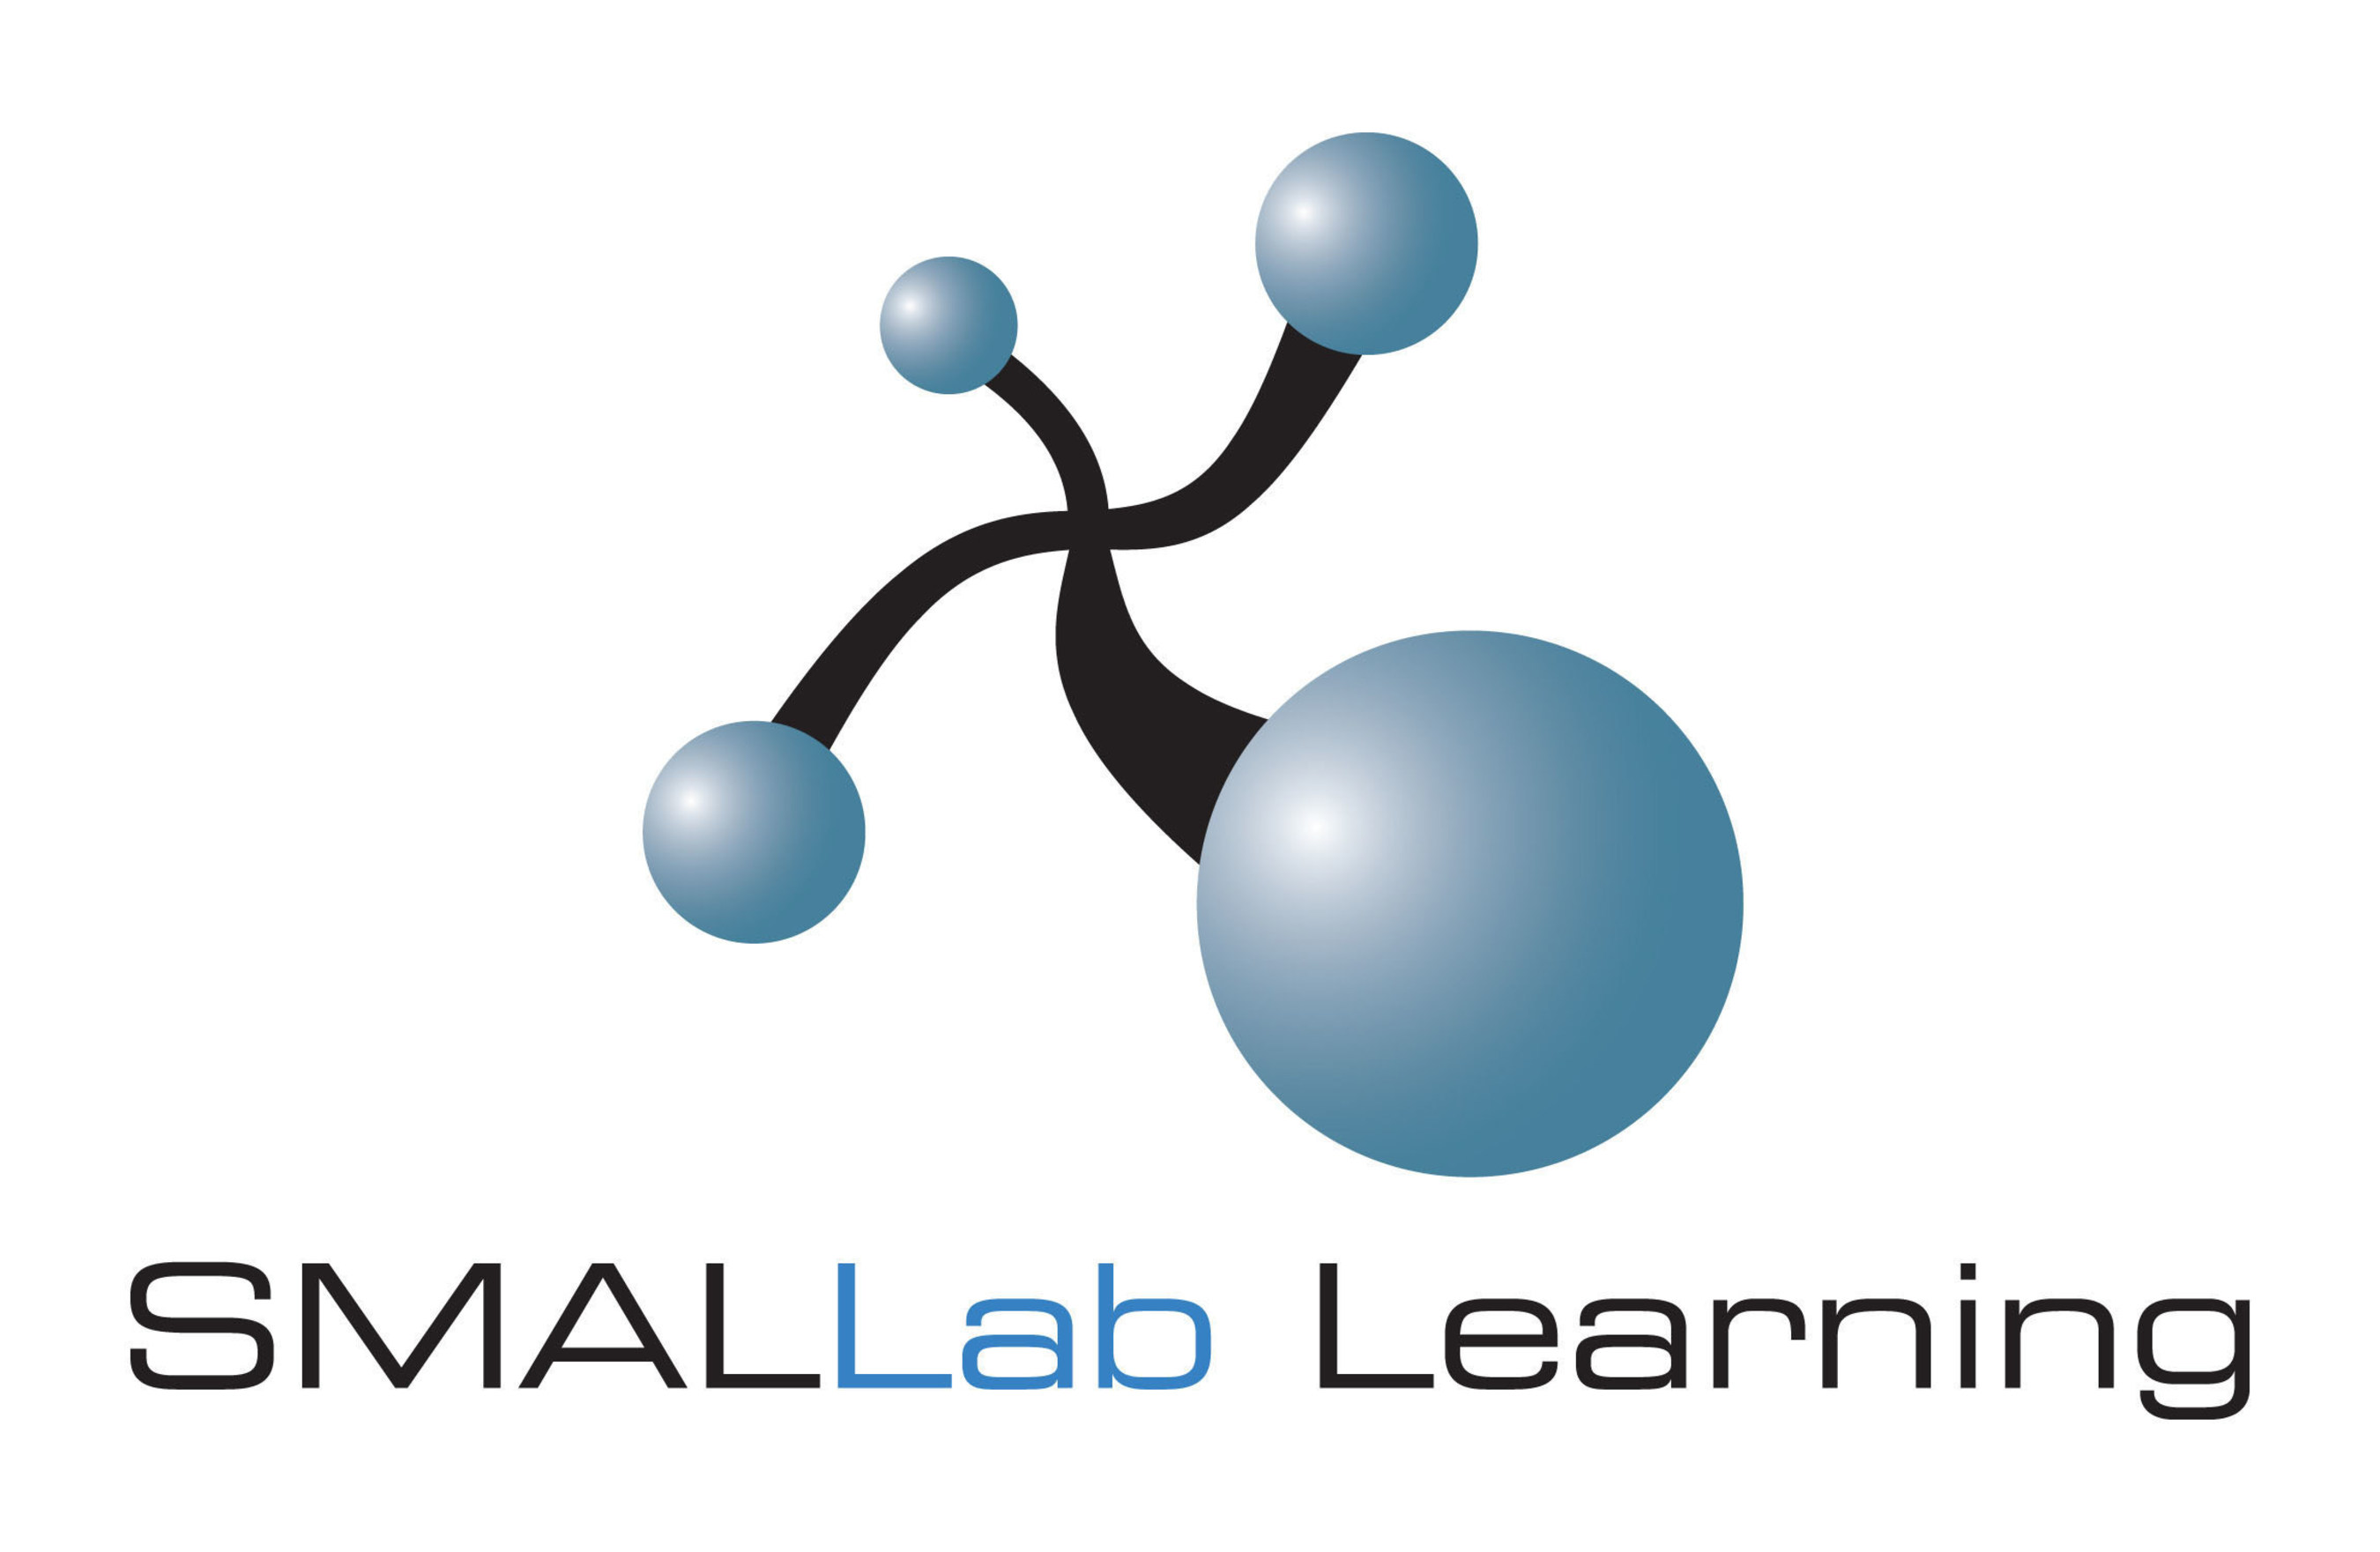 Carnegie Mellon University and SMALLab Learning to Develop Embodied Learning Scenarios